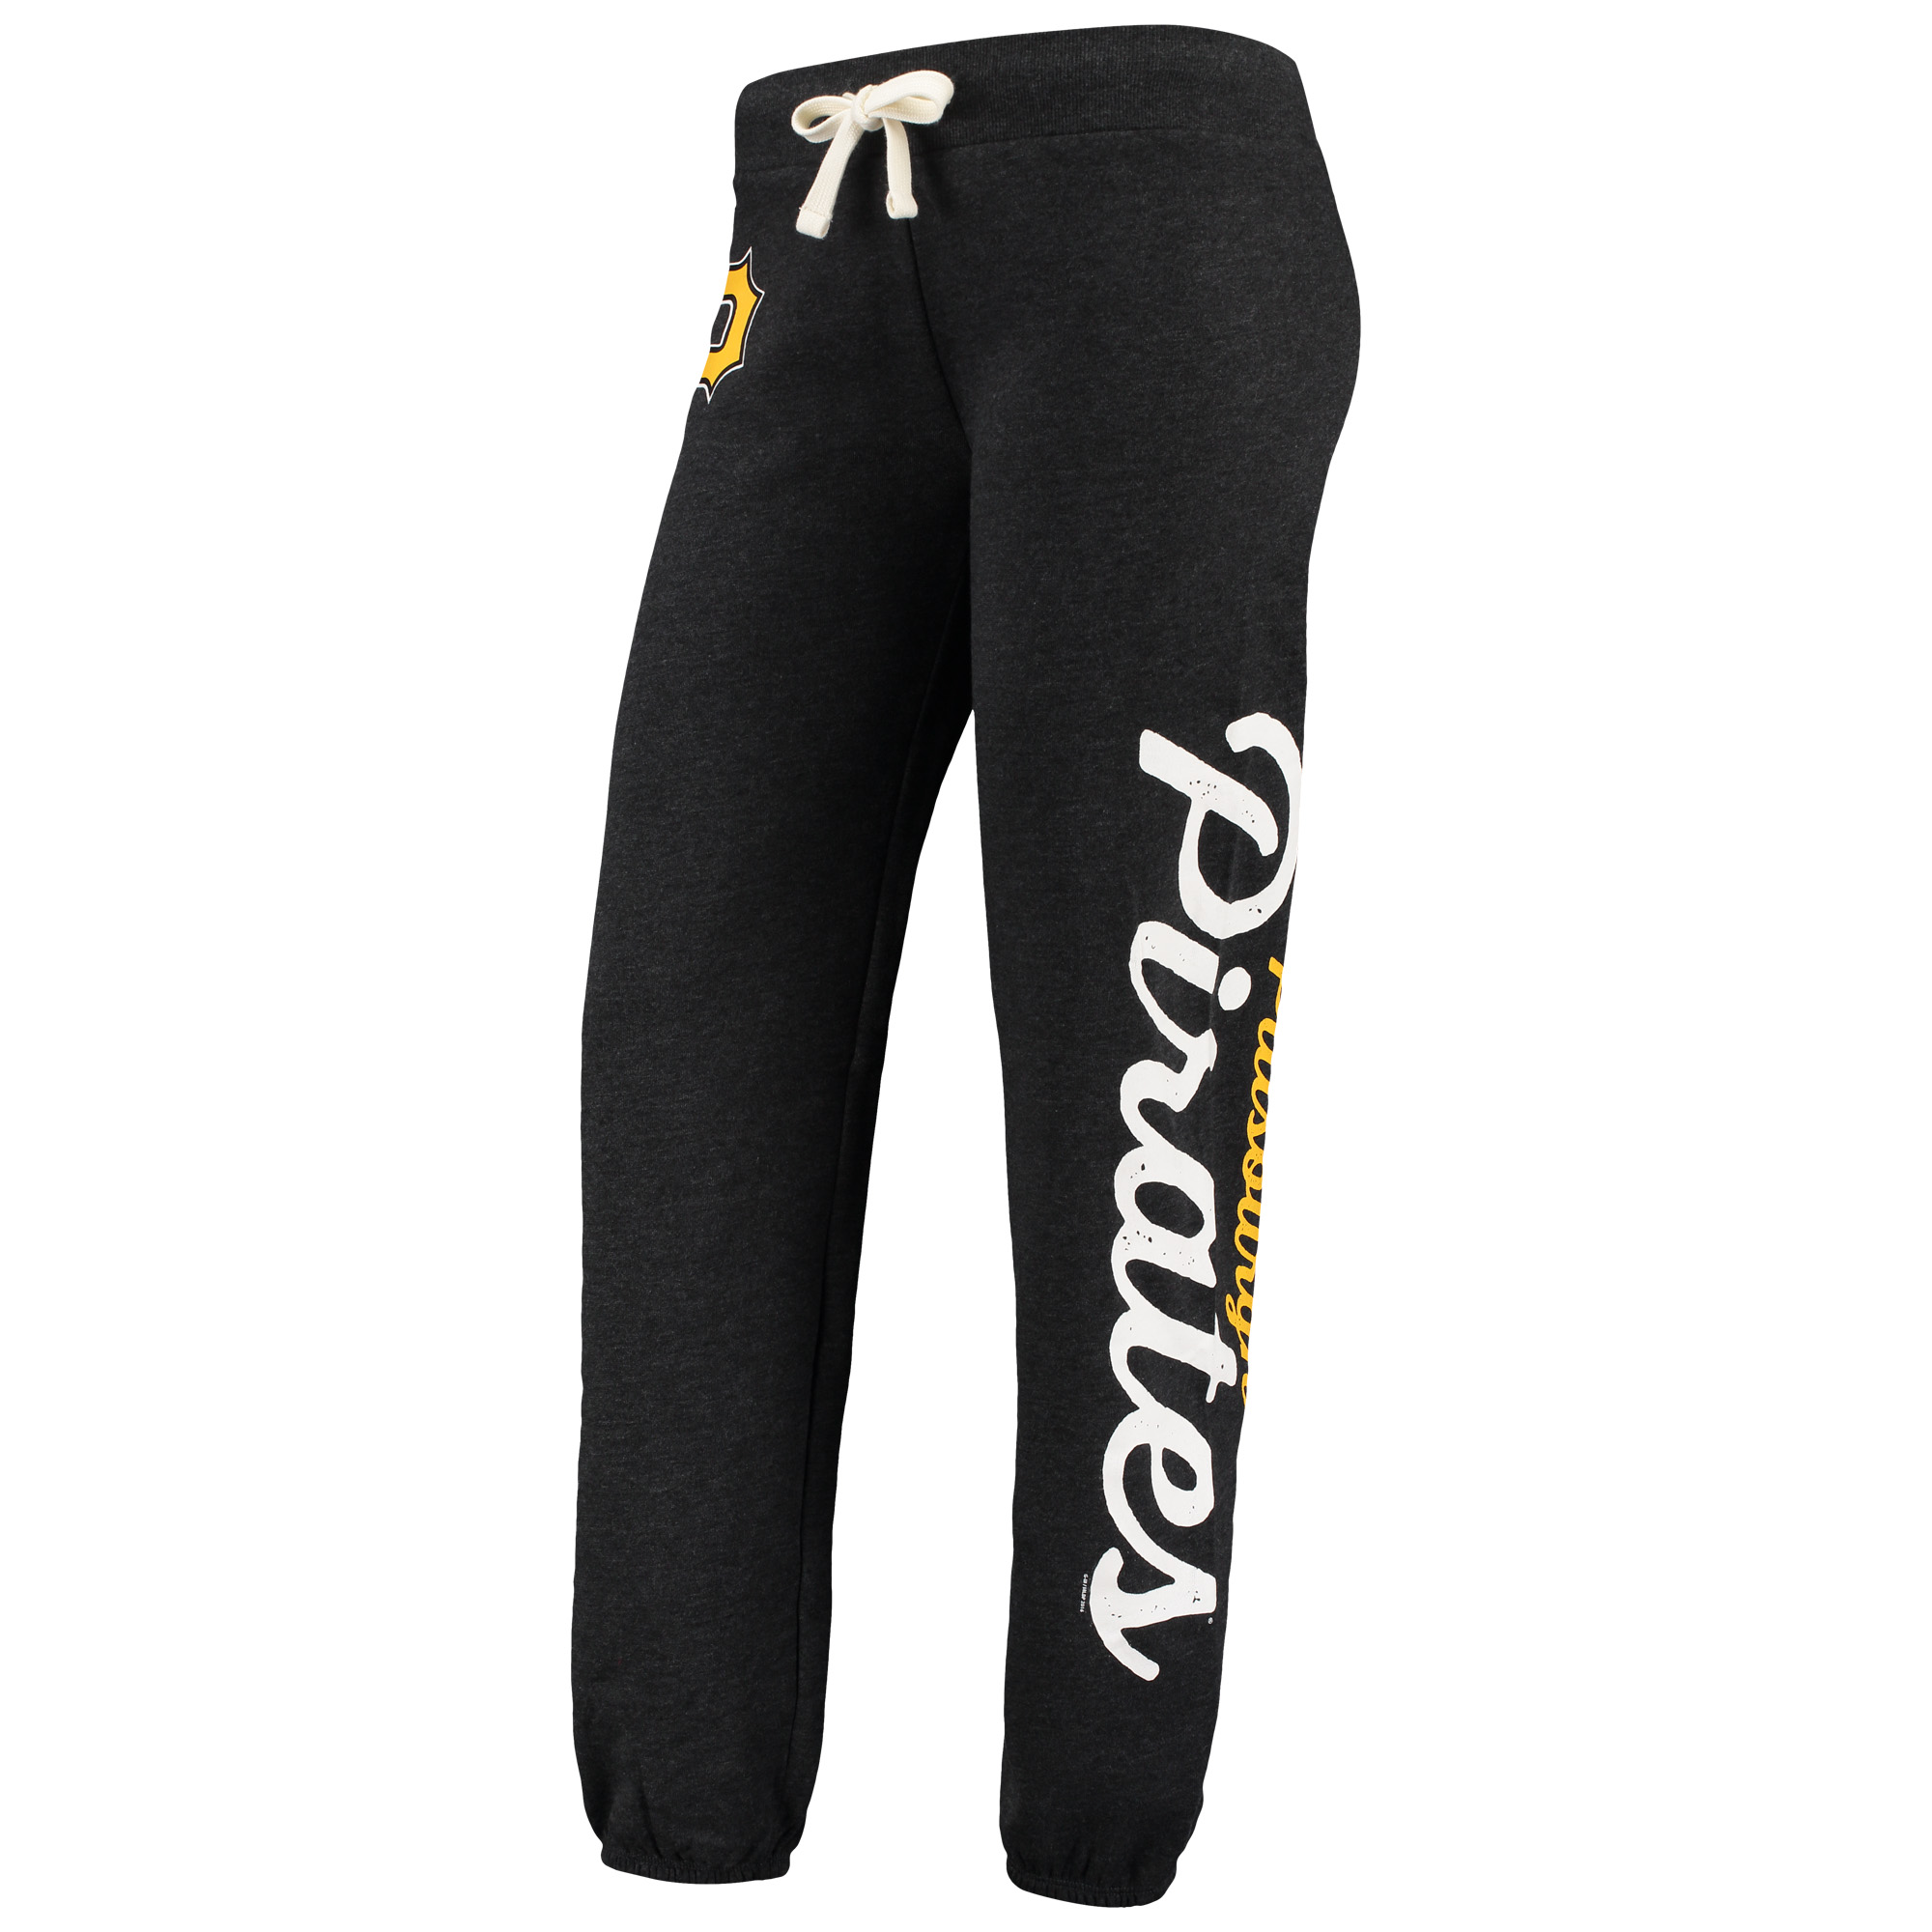 Pittsburgh Pirates G-III 4Her by Carl Banks Women's Scrimmage Pants - Black